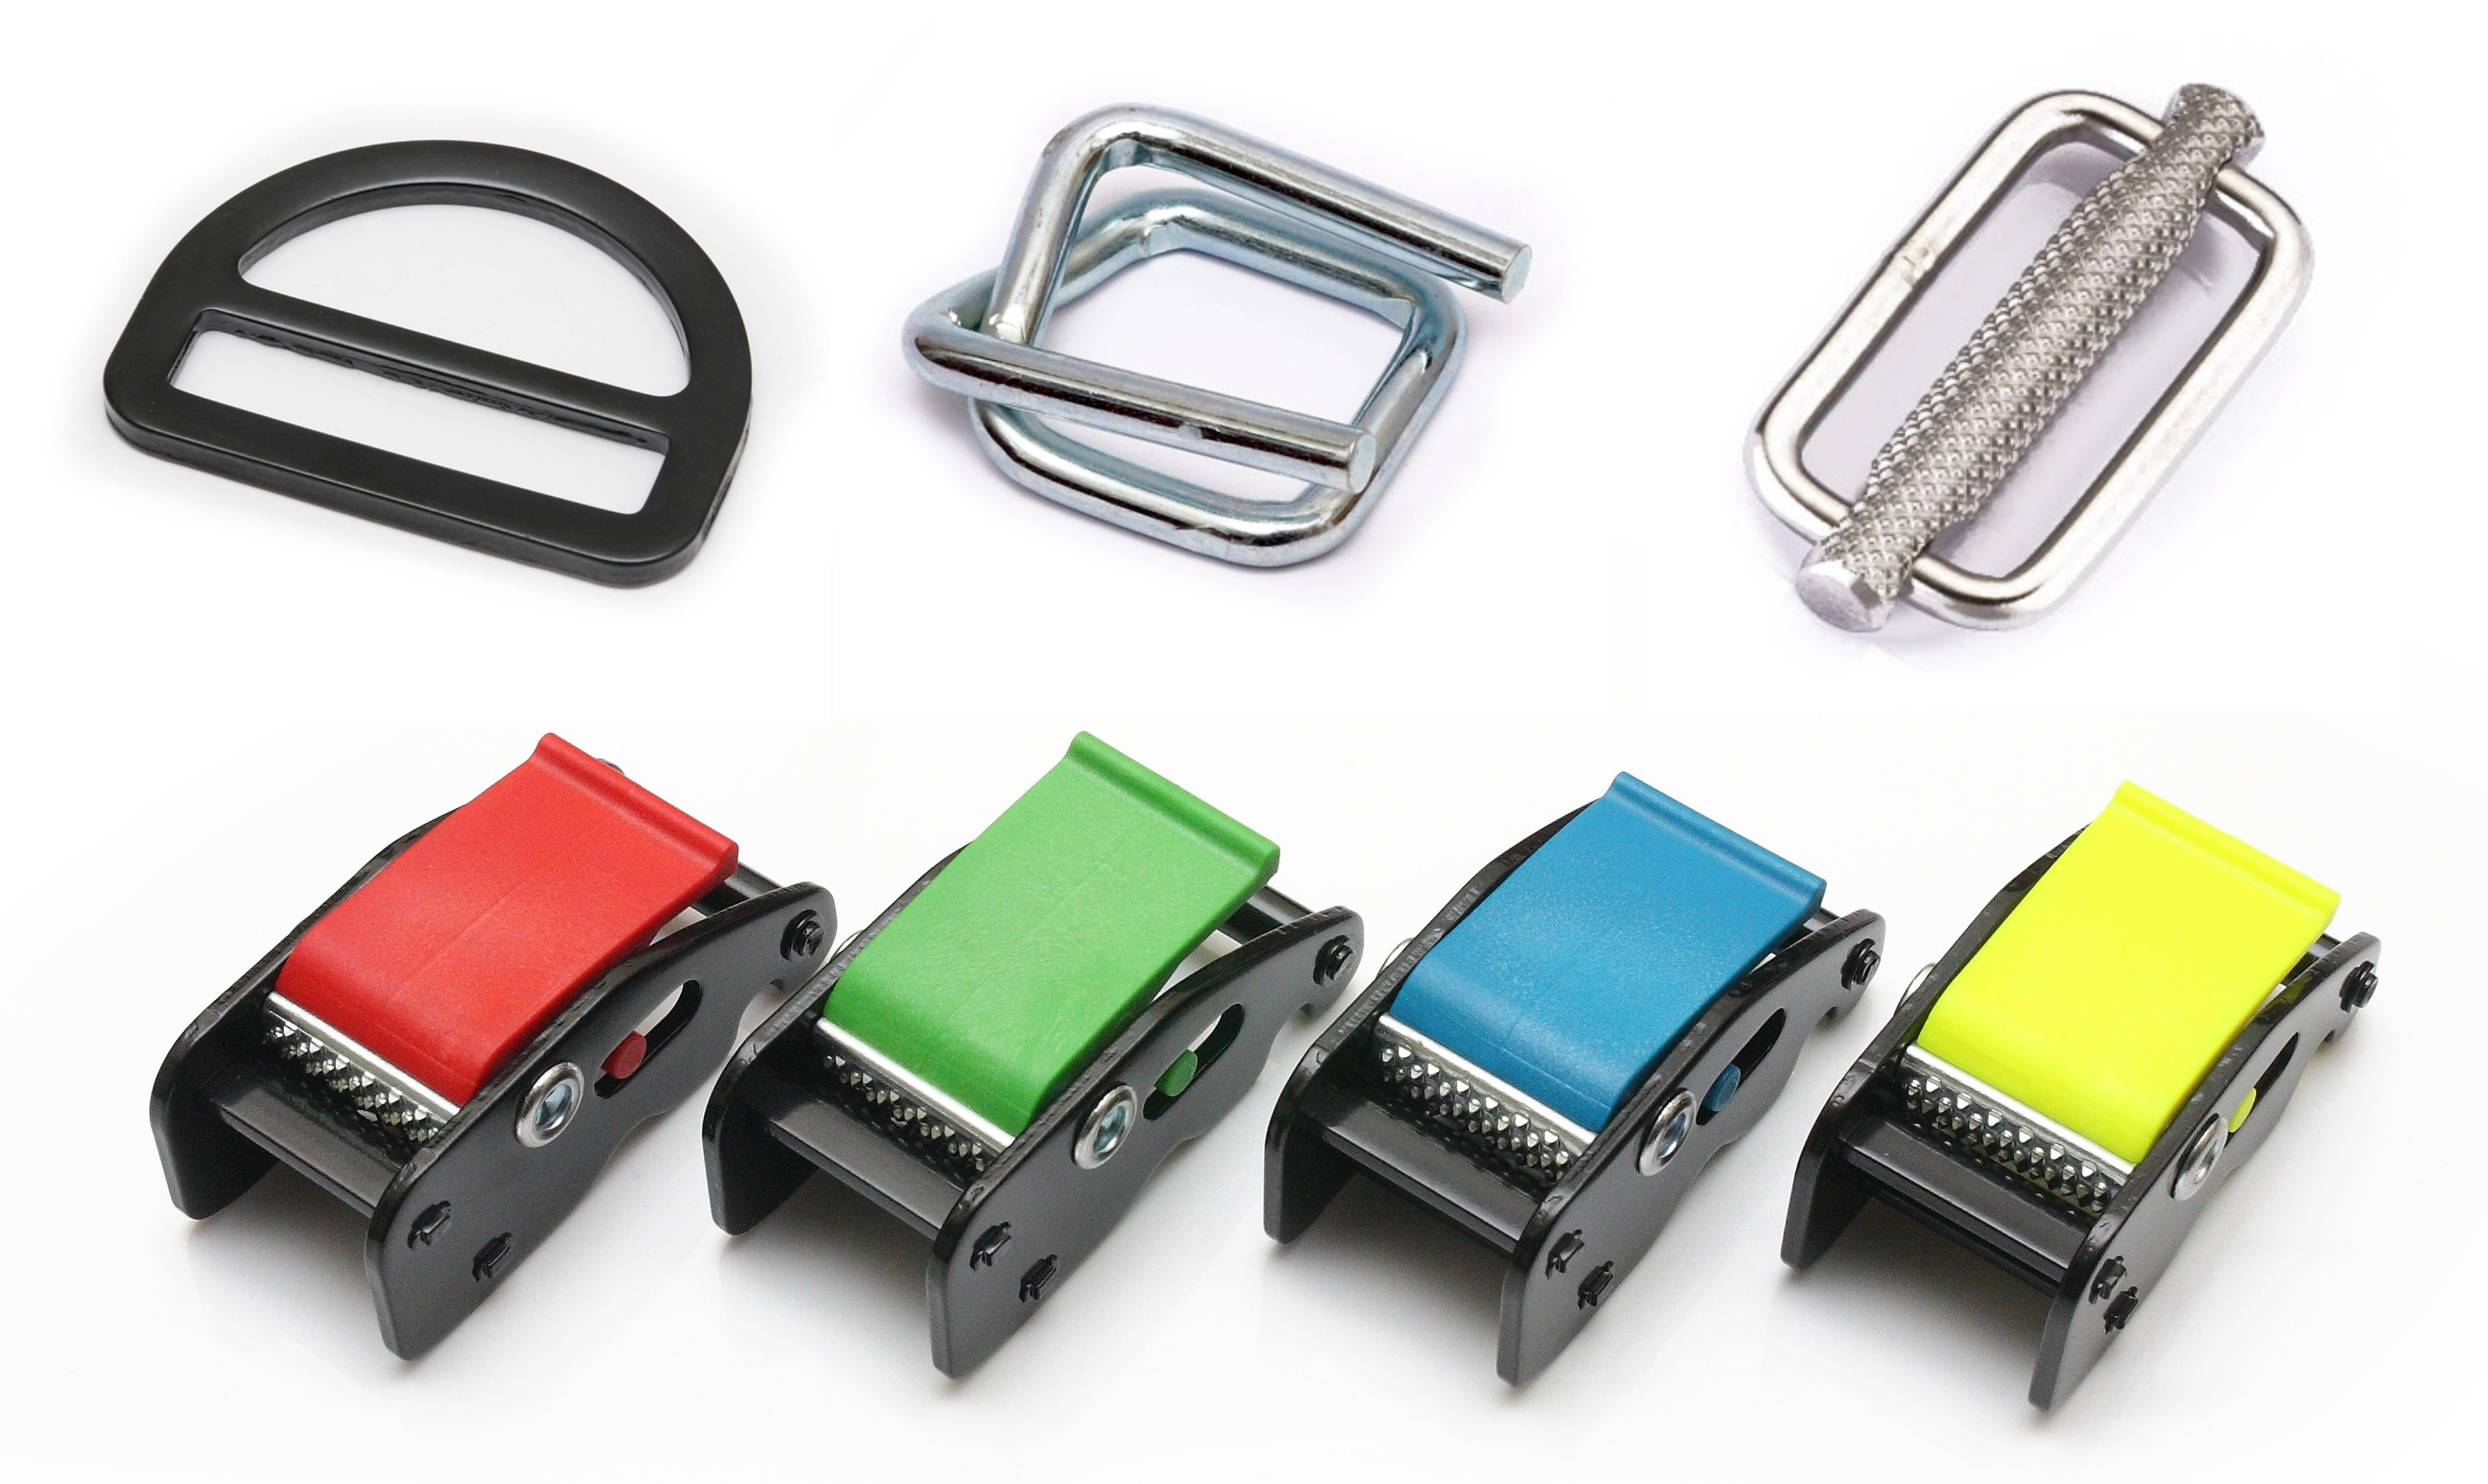 Bus Buckle for Auto Exterior Accessories made by Win Chance Metal Co., LTD. 鈞成金屬股份有限公司 - MatchSupplier.com